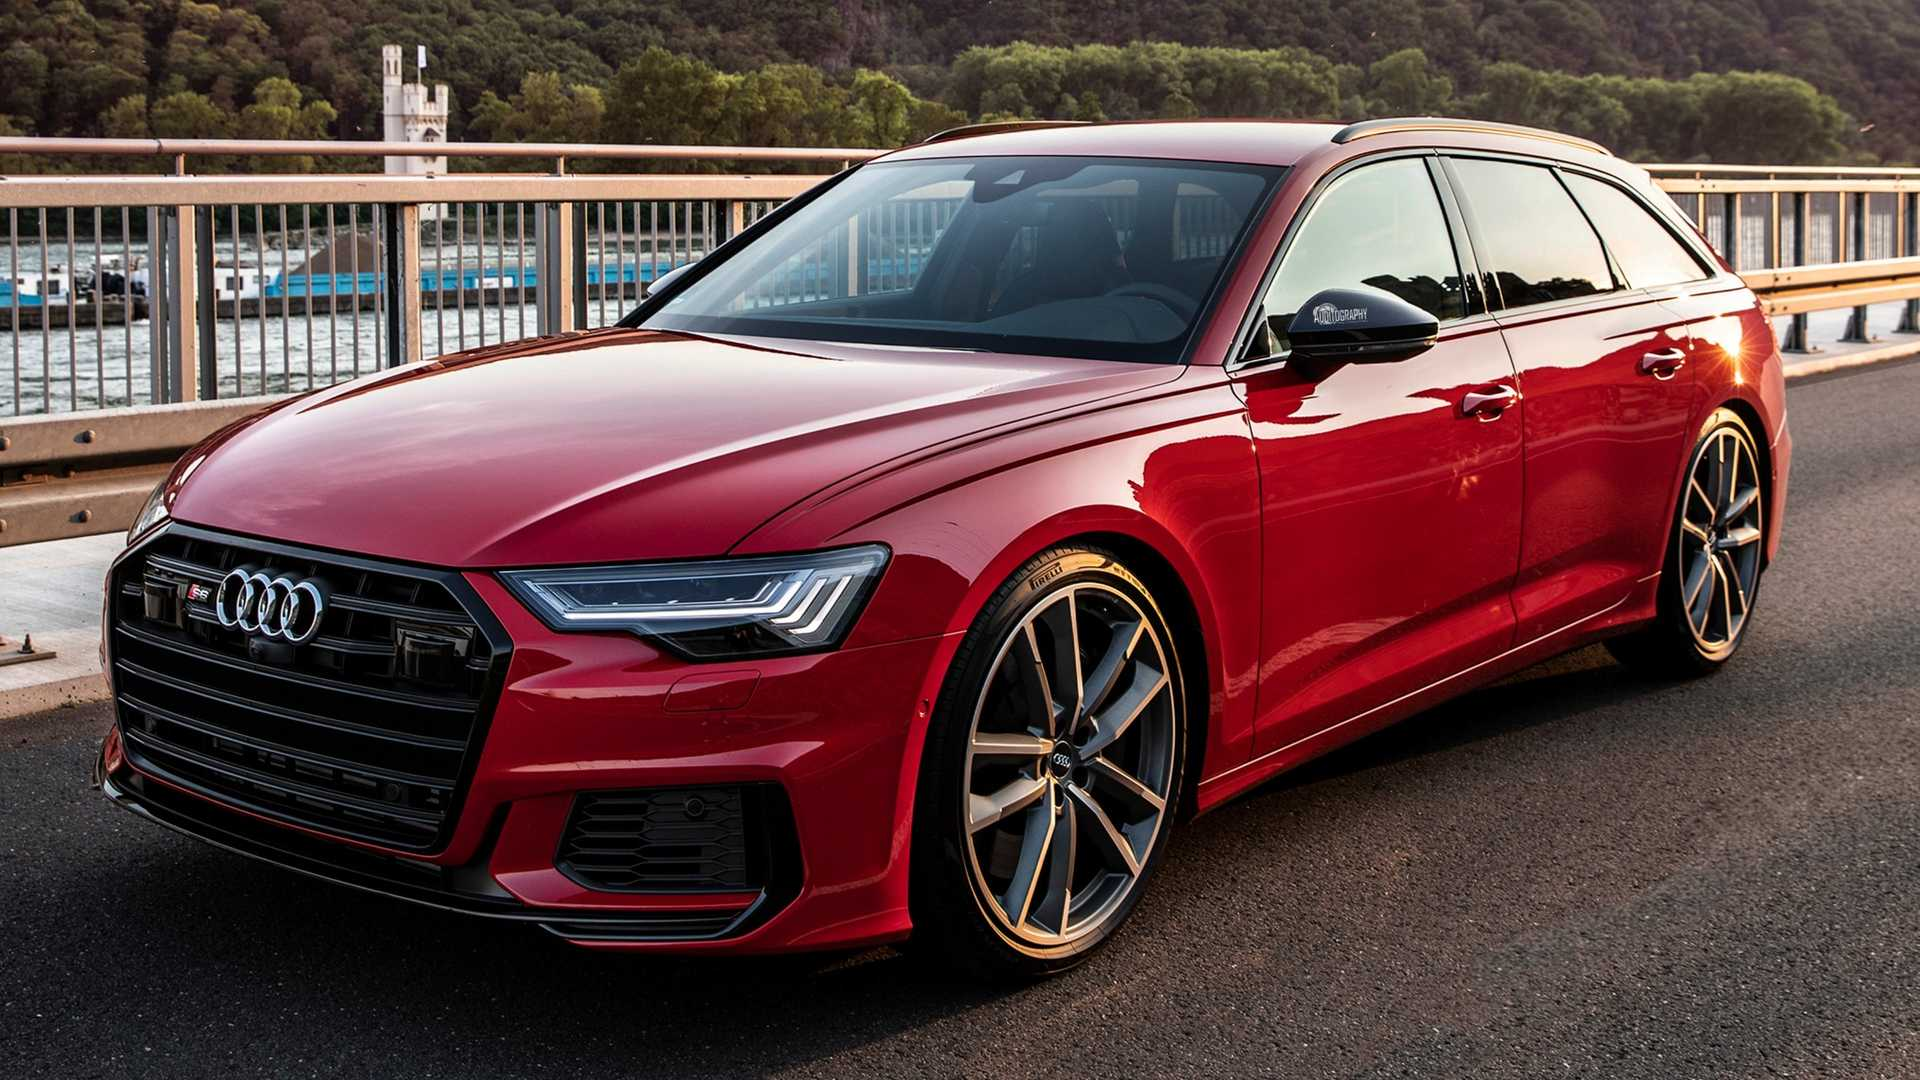 72 All New 2020 Audi S6 Price and Release date